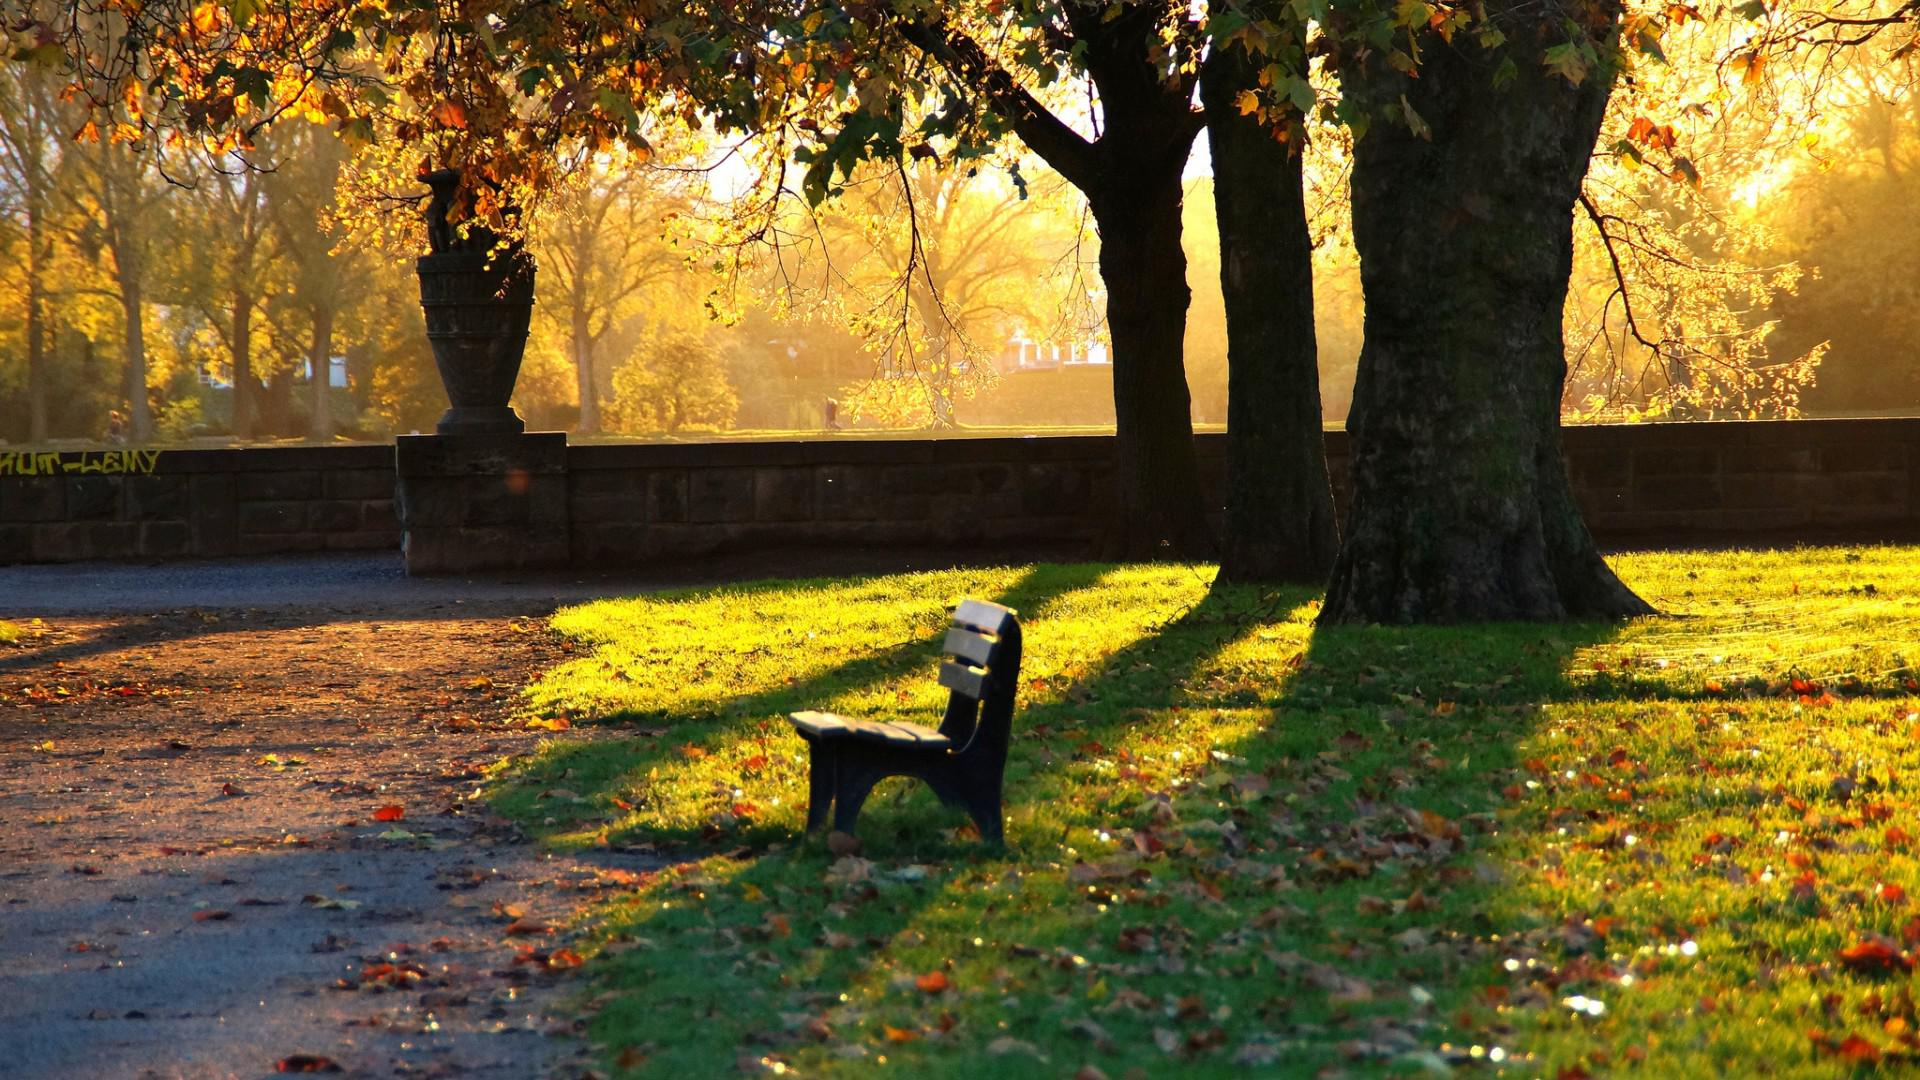 4k Central Park In The Fall Wallpaper Park Benches Grass Leaves Fall Evening Quiet Scenery